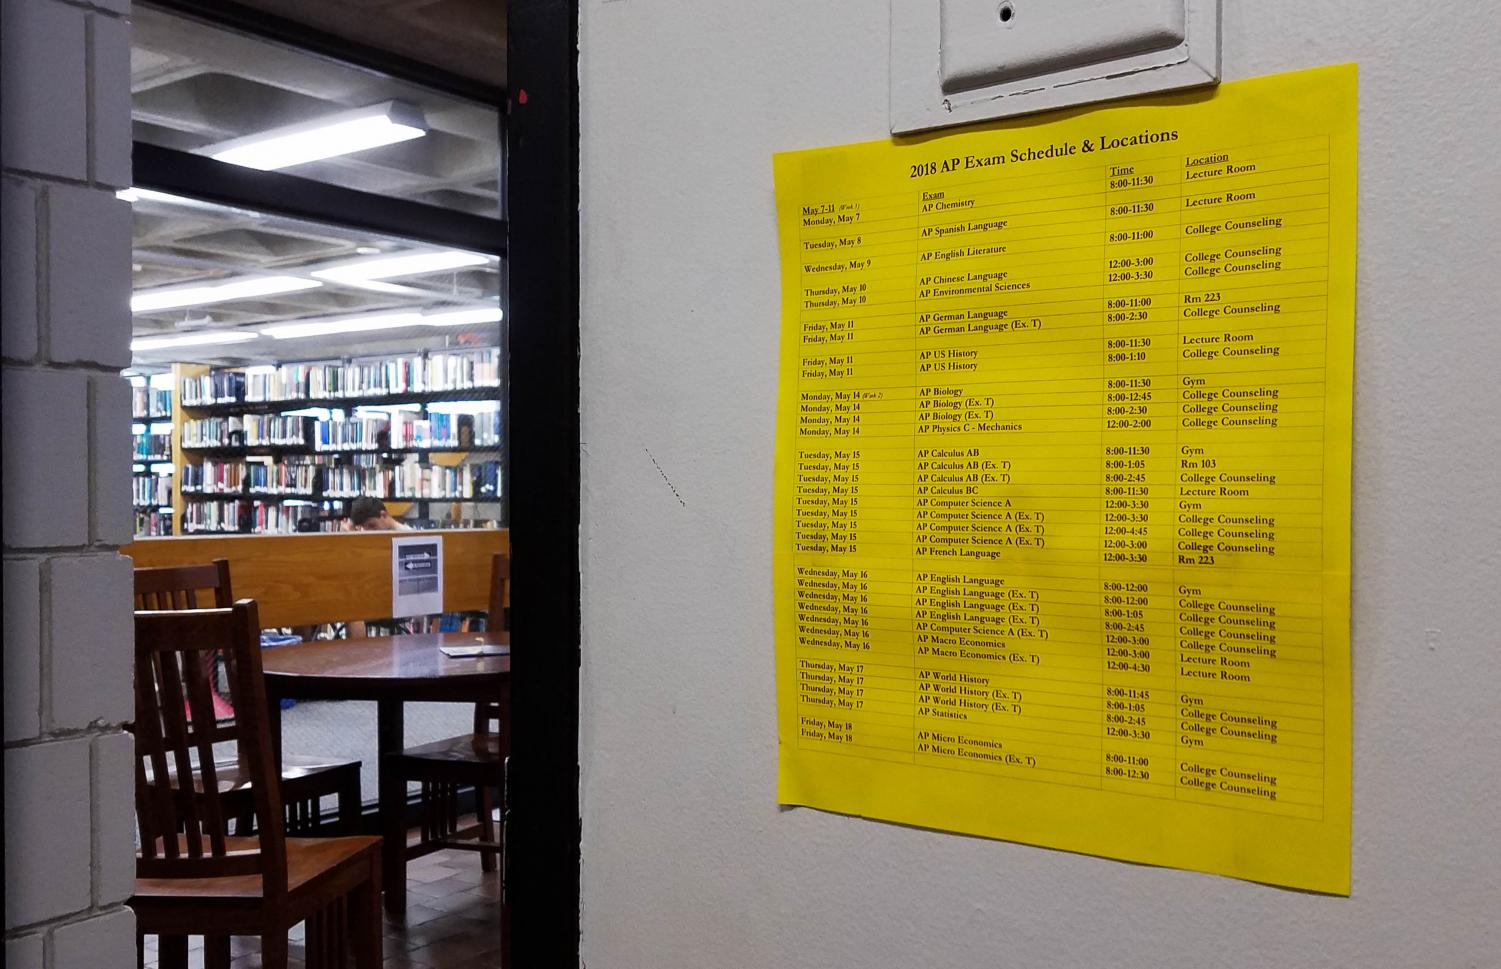 Schedules like these can be seen all over the Upper School describing where the exams will take place.